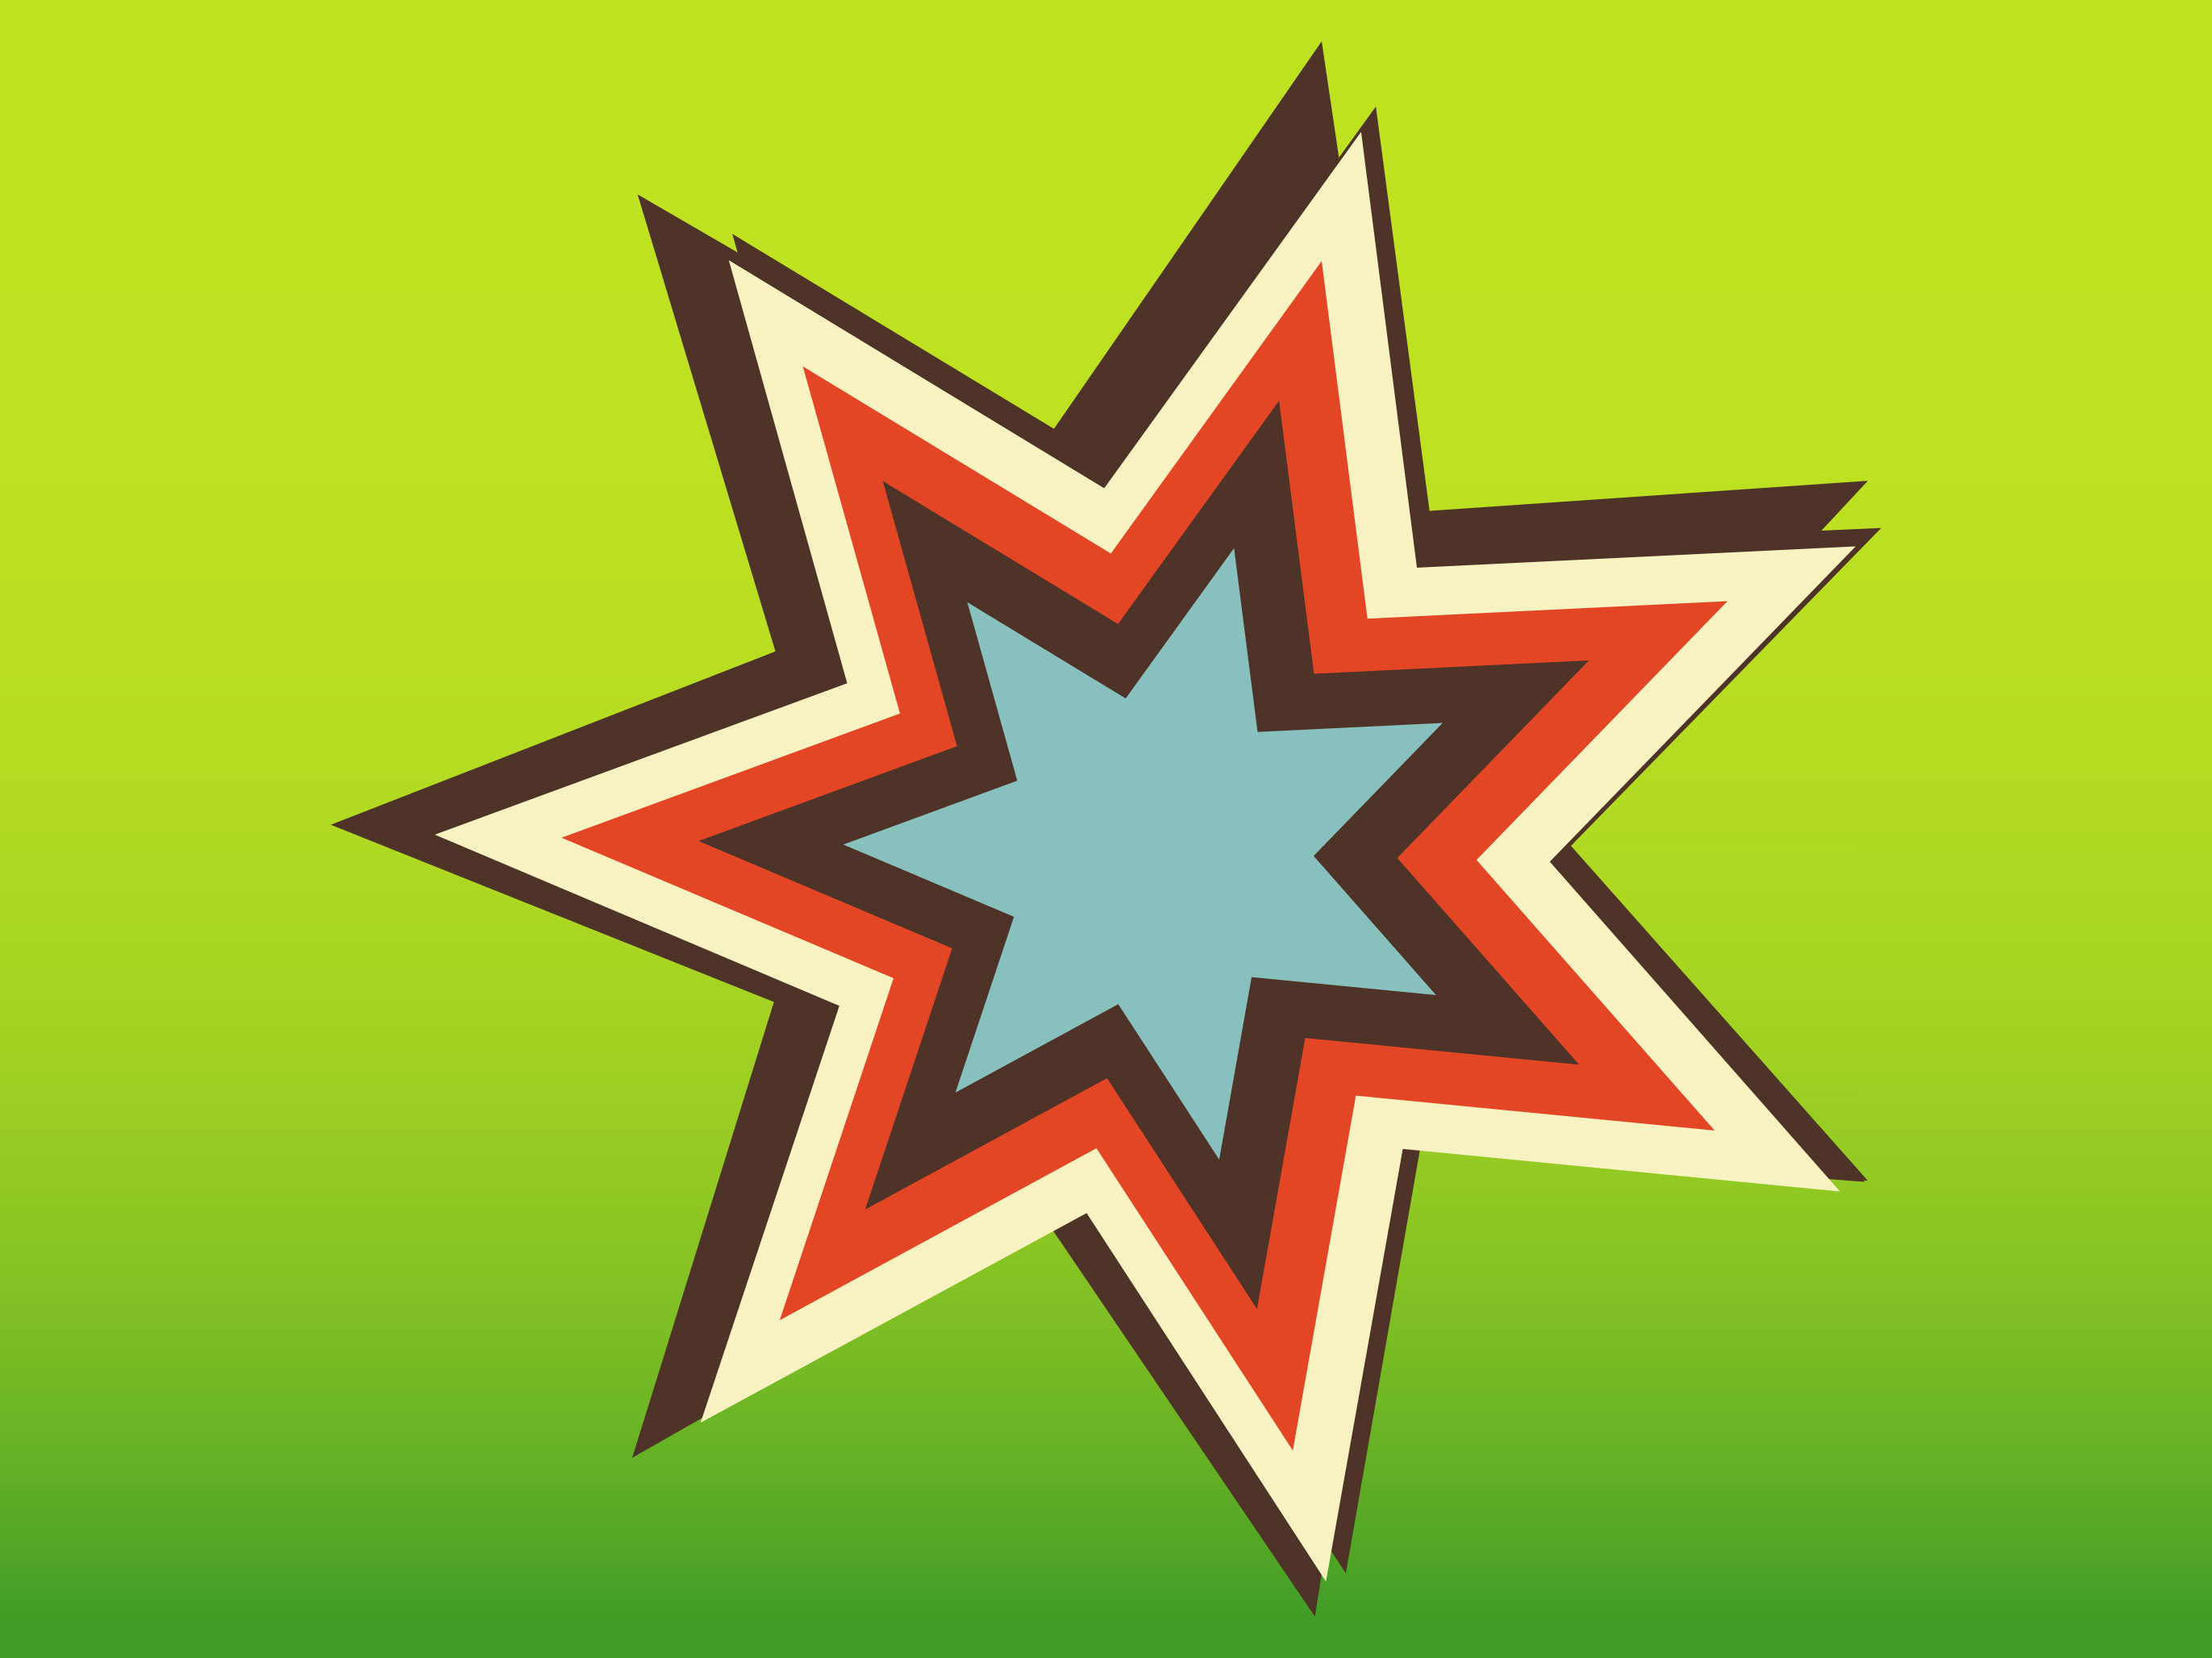 Star Vectors,Retro